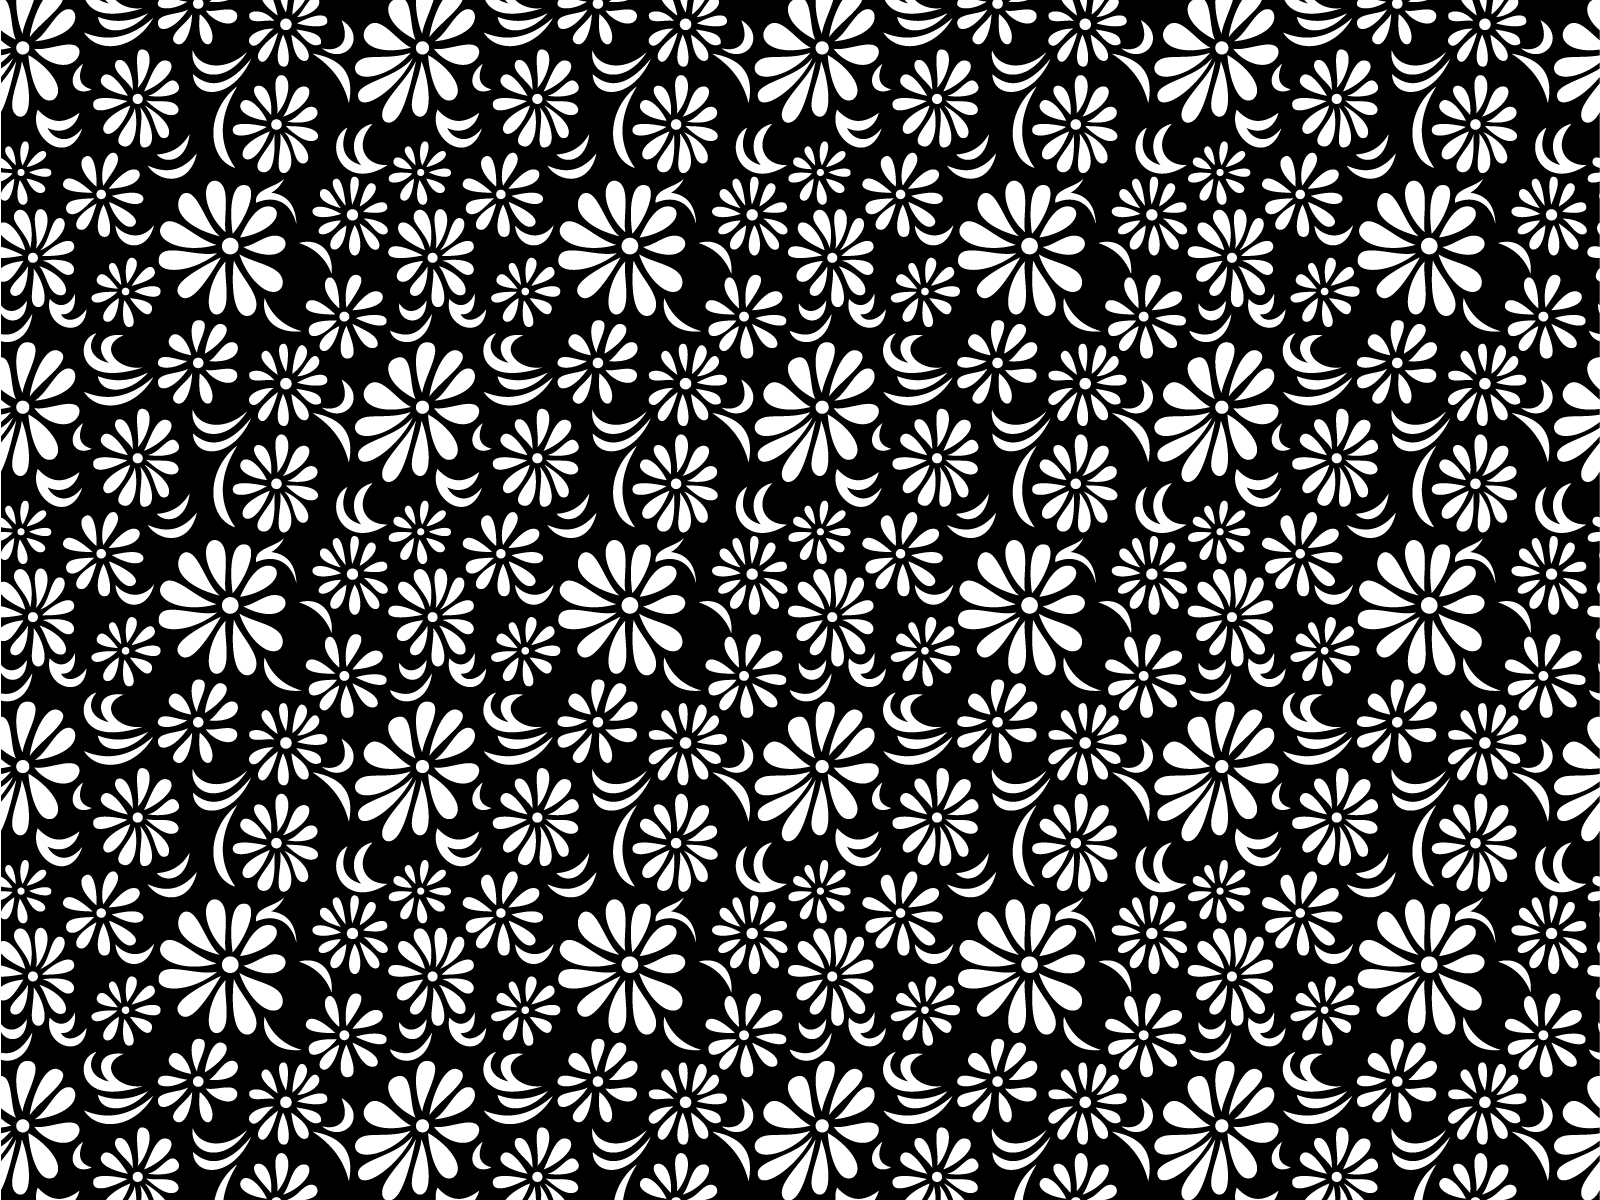 Black and White Floral ...